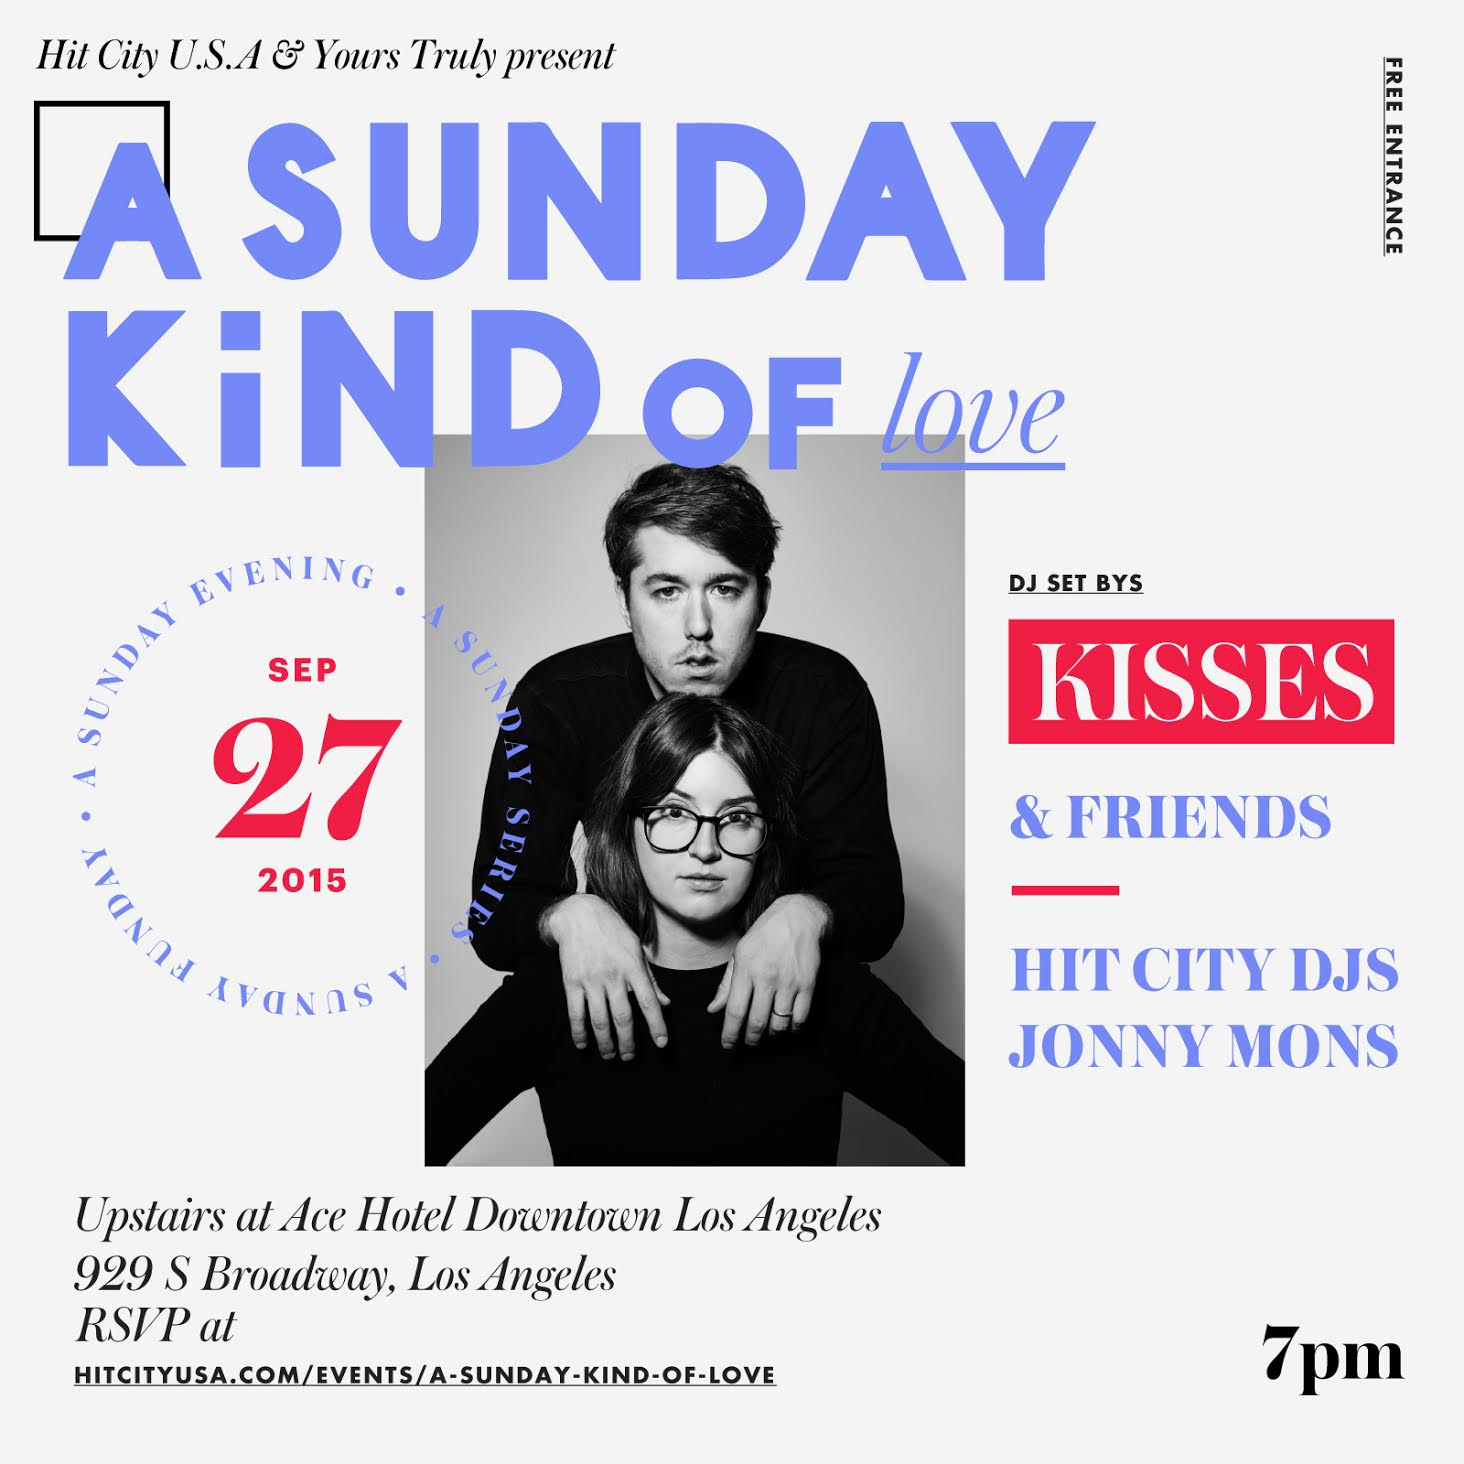 A Sunday Kind of Love With Kisses